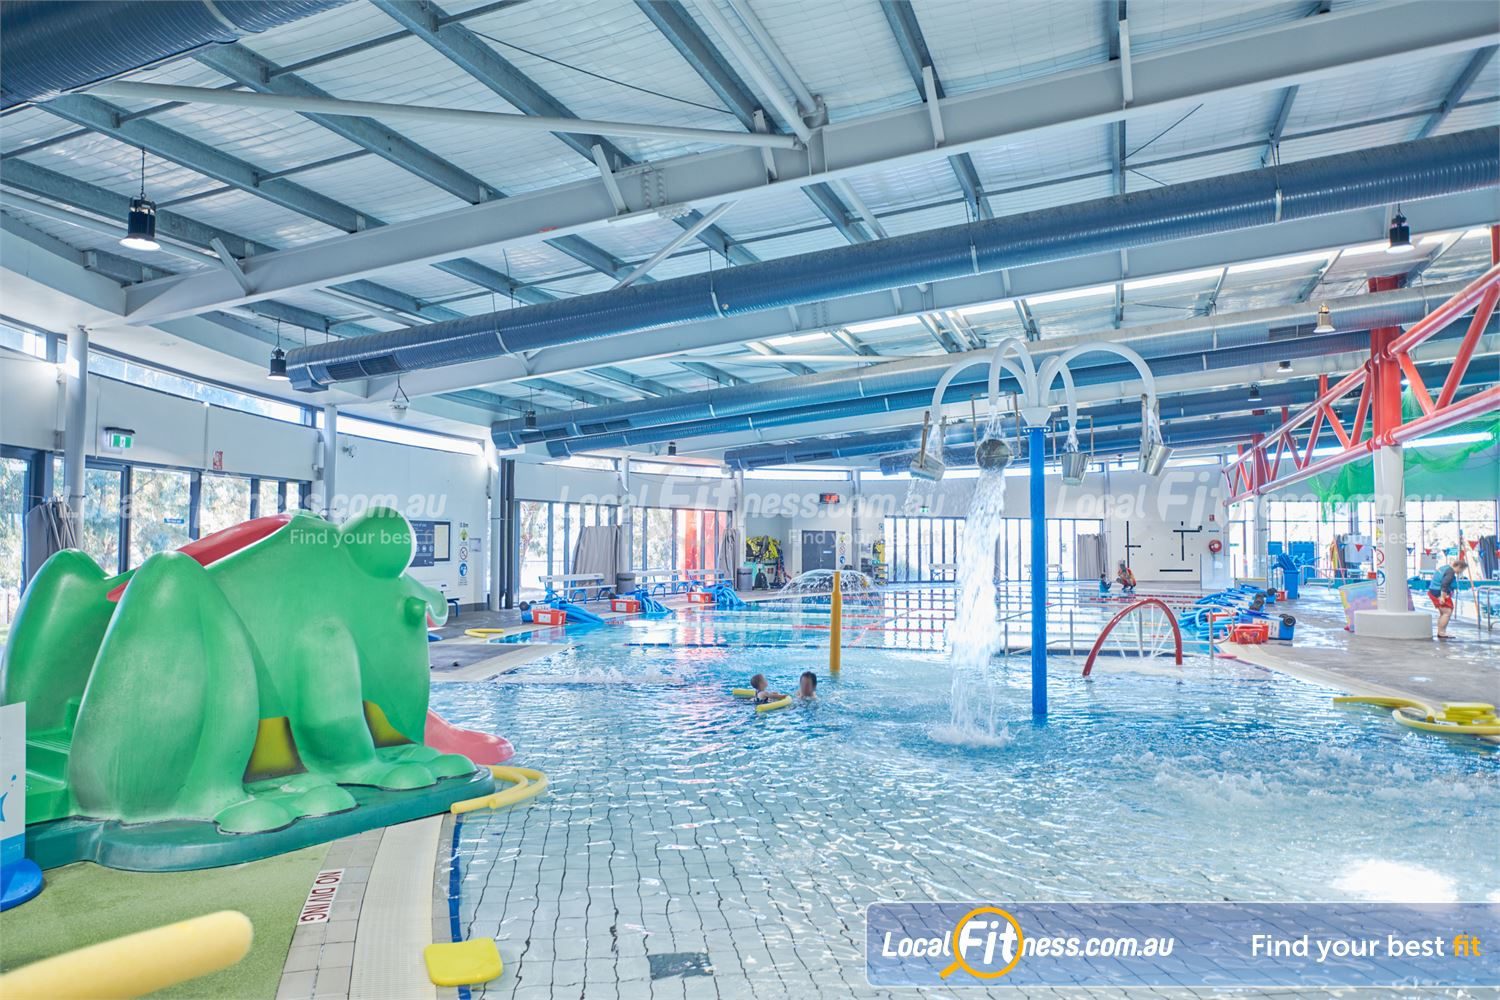 Maribyrnong Aquatic Centre Near Essendon West The Leisure pool includes water spray, tipping buckets and frog slide.